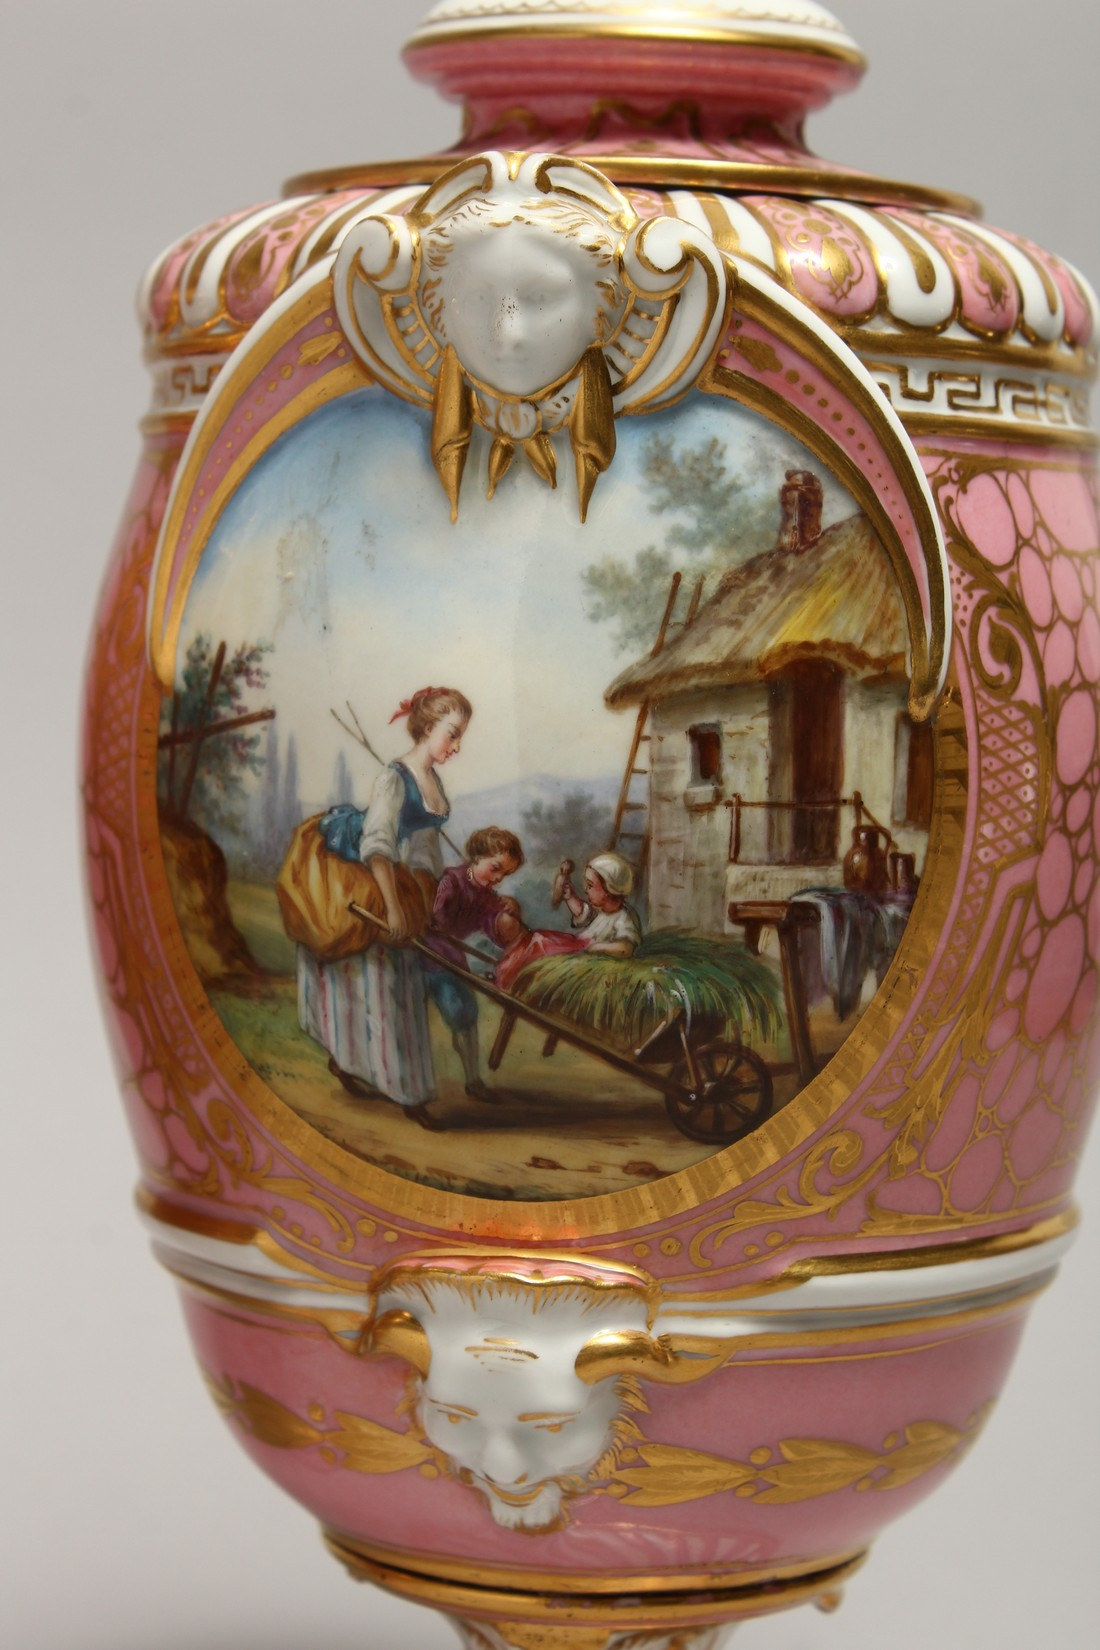 A VERY GOOD PAIR OF SEVRES PINK GROUND VASES AND COVERS each painted with reverse panels of figures, - Image 3 of 12